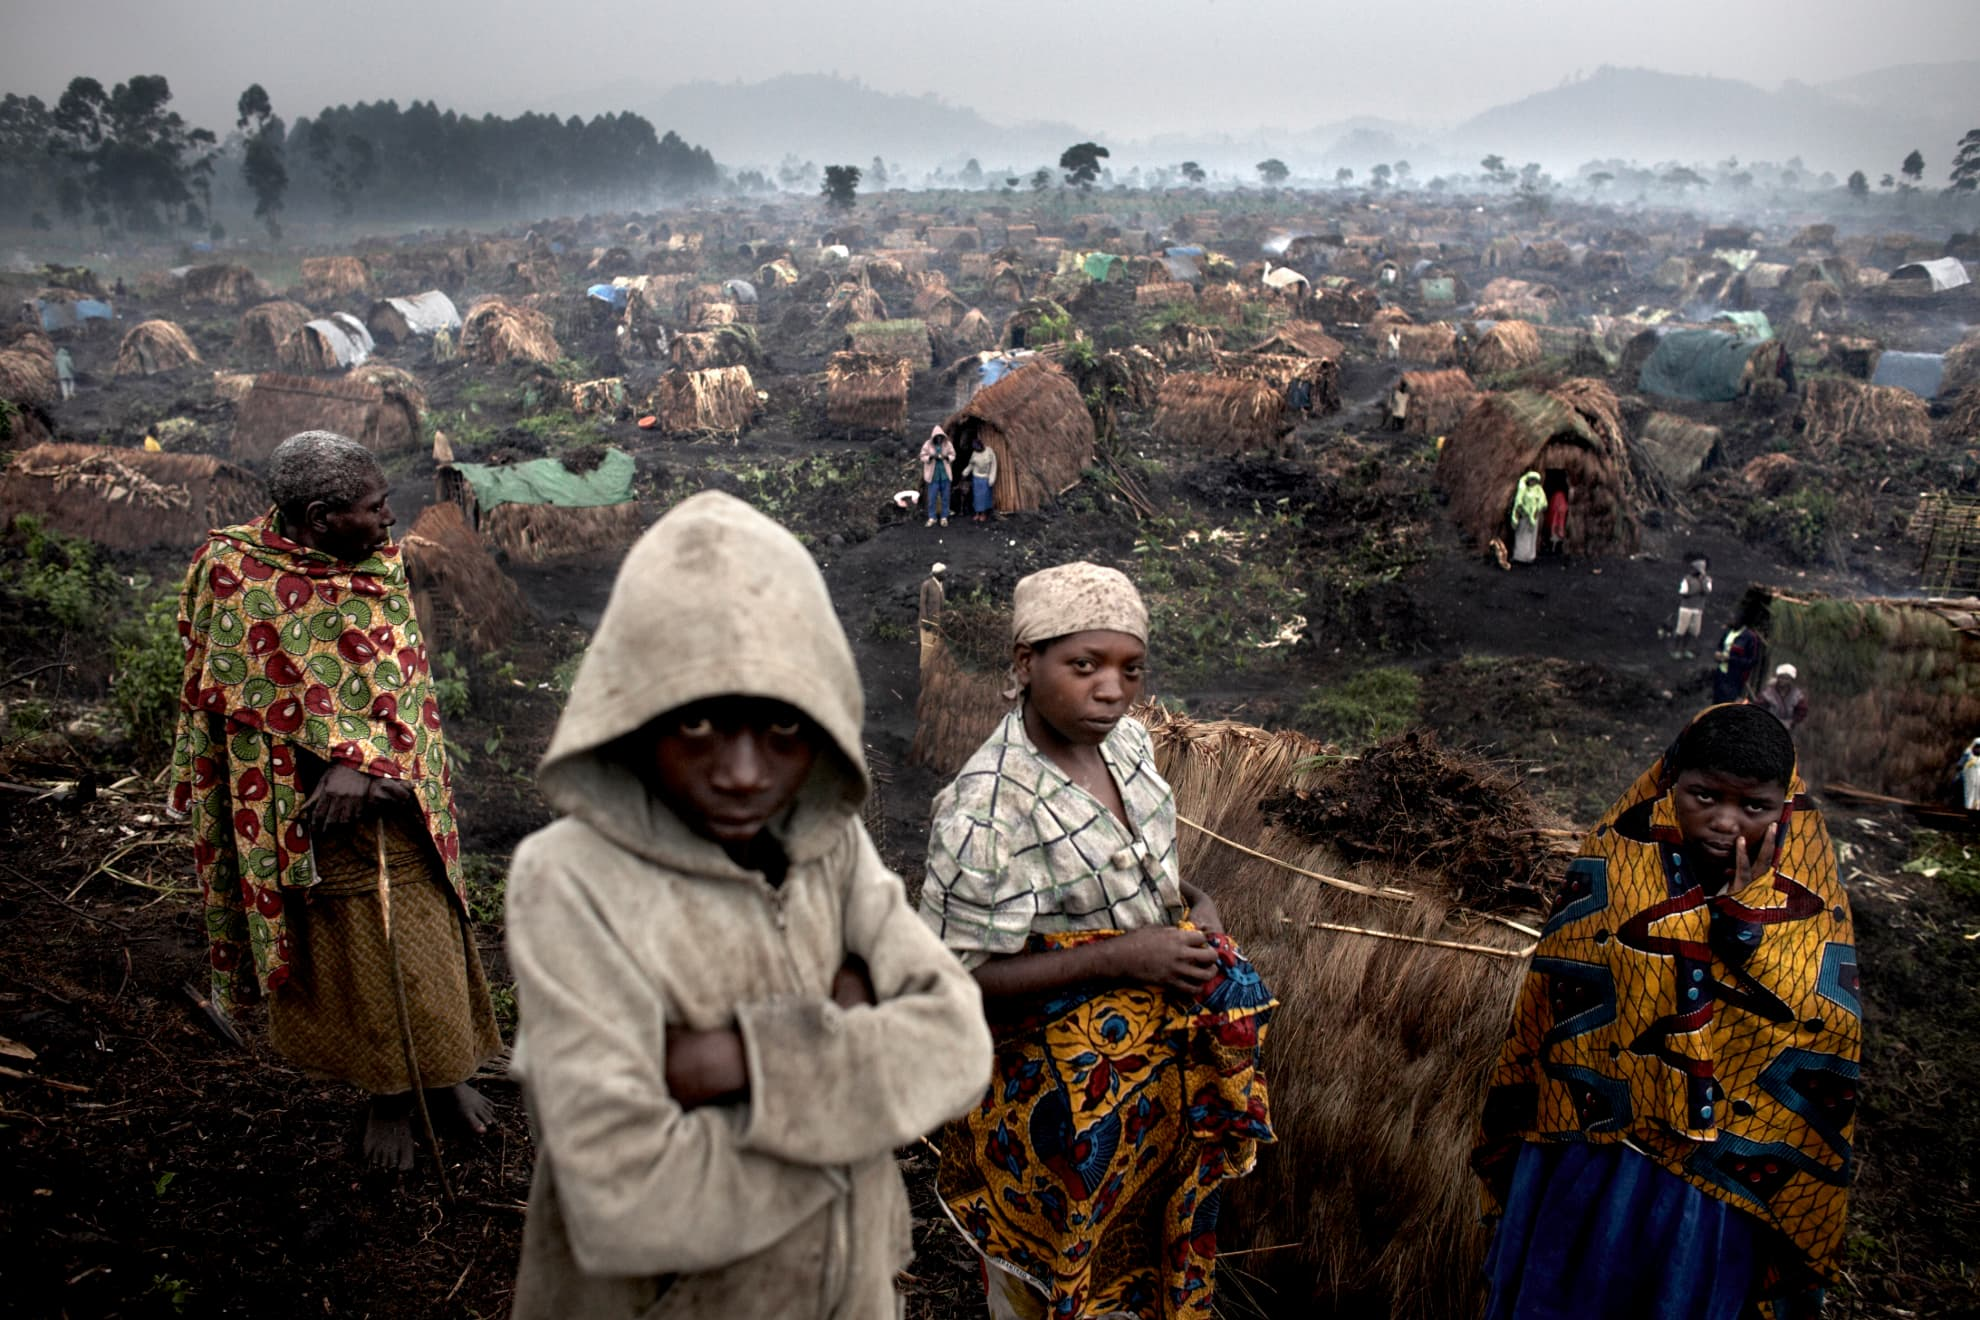 Internally displaced persons stand in the rain in the Chefferie IDP site, home to some 4,000 people, in the town of Kitchanga, North Kivu, DR Congo. The camp started to form in Oct/Nov 2007 and as of Feb 2008 still had not received humanitarian assistance due to the instability of the area.